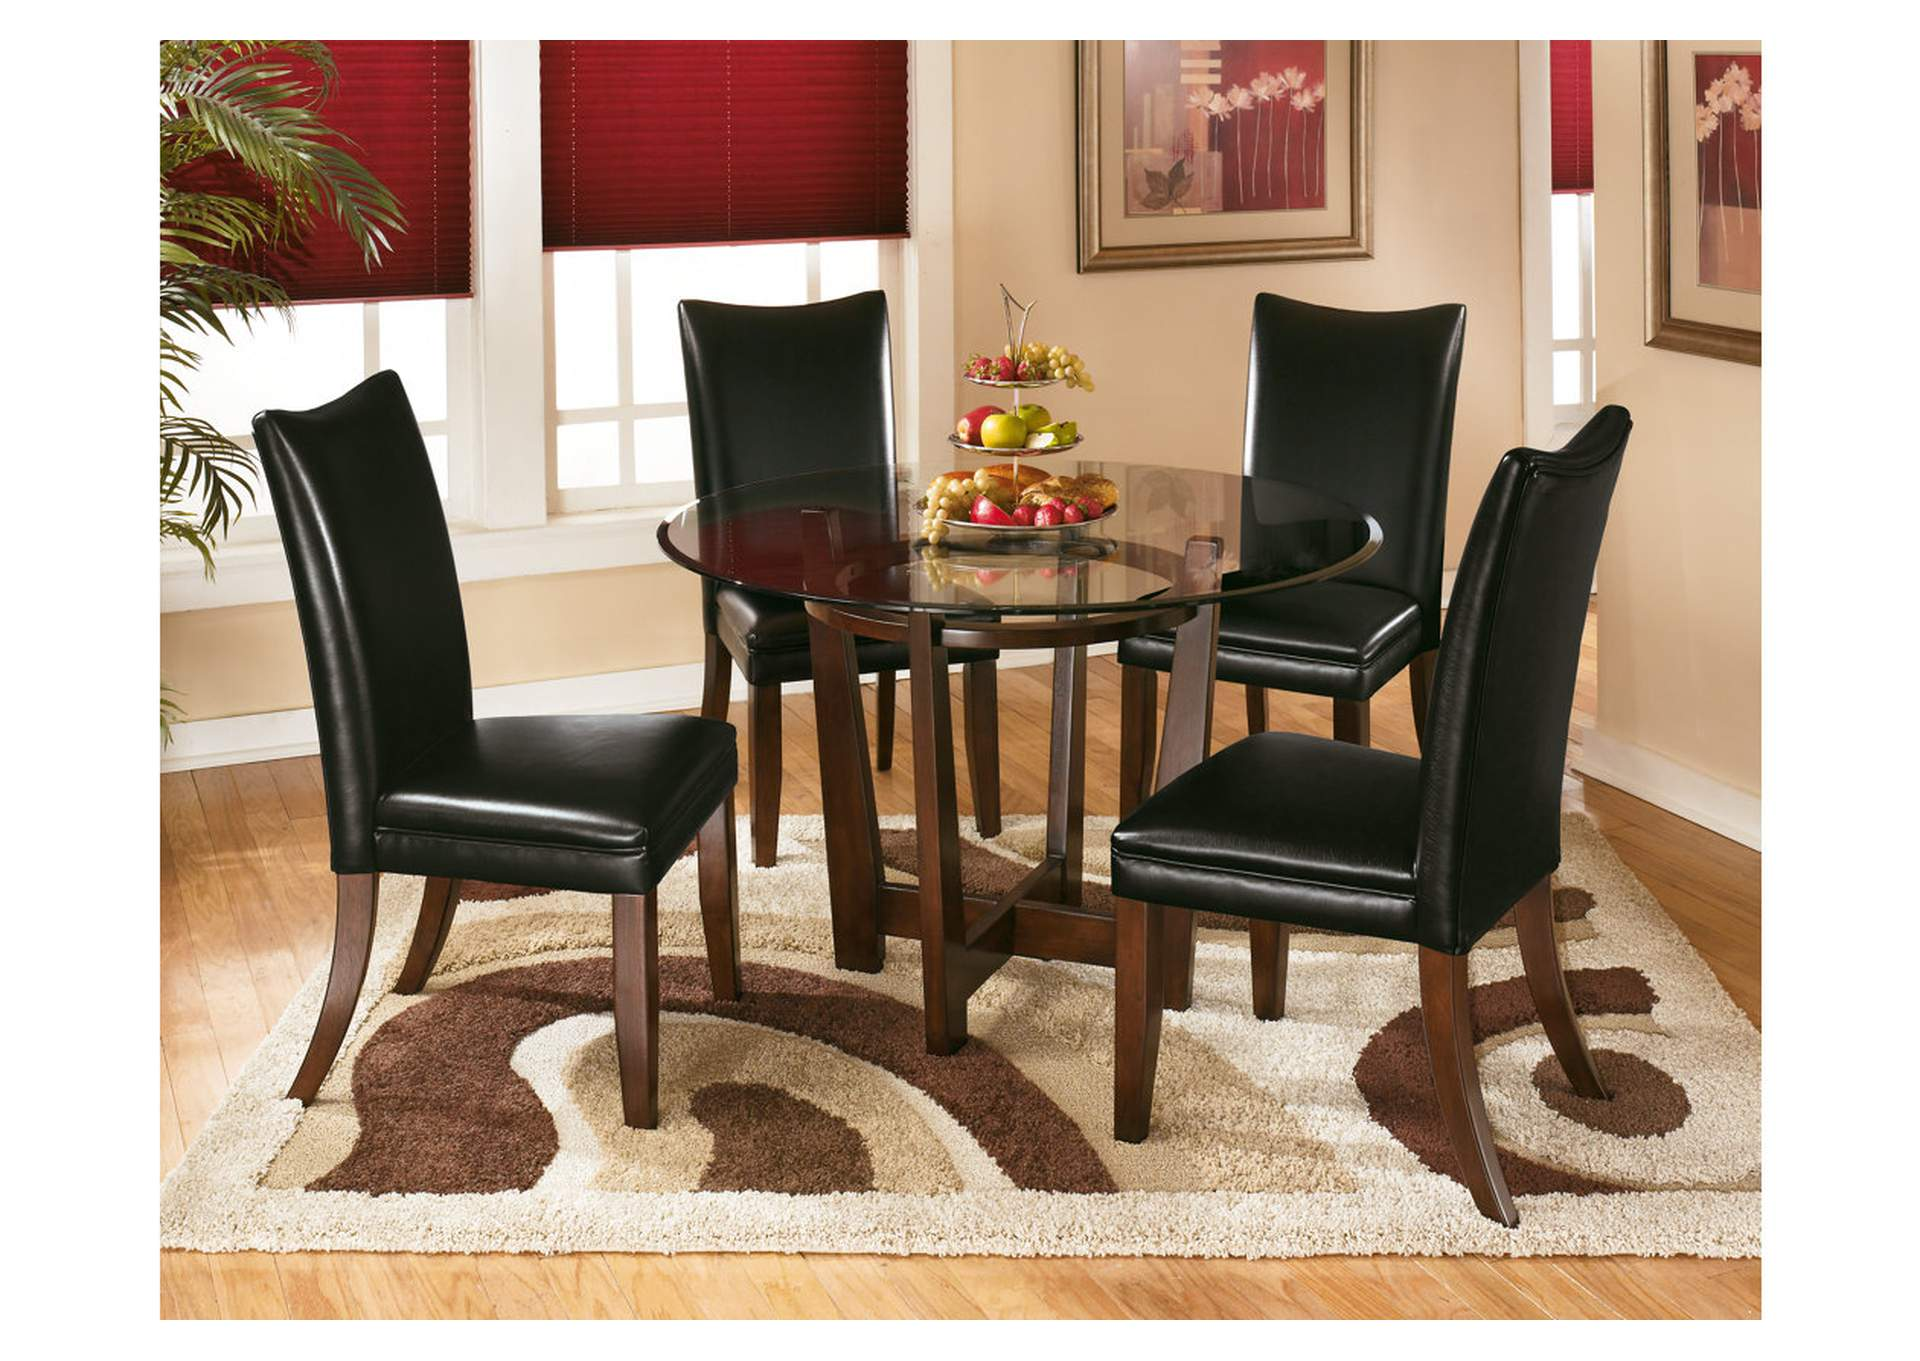 Charell Round Dining Table w/ 4 Black Side Chairs,Signature Design By Ashley